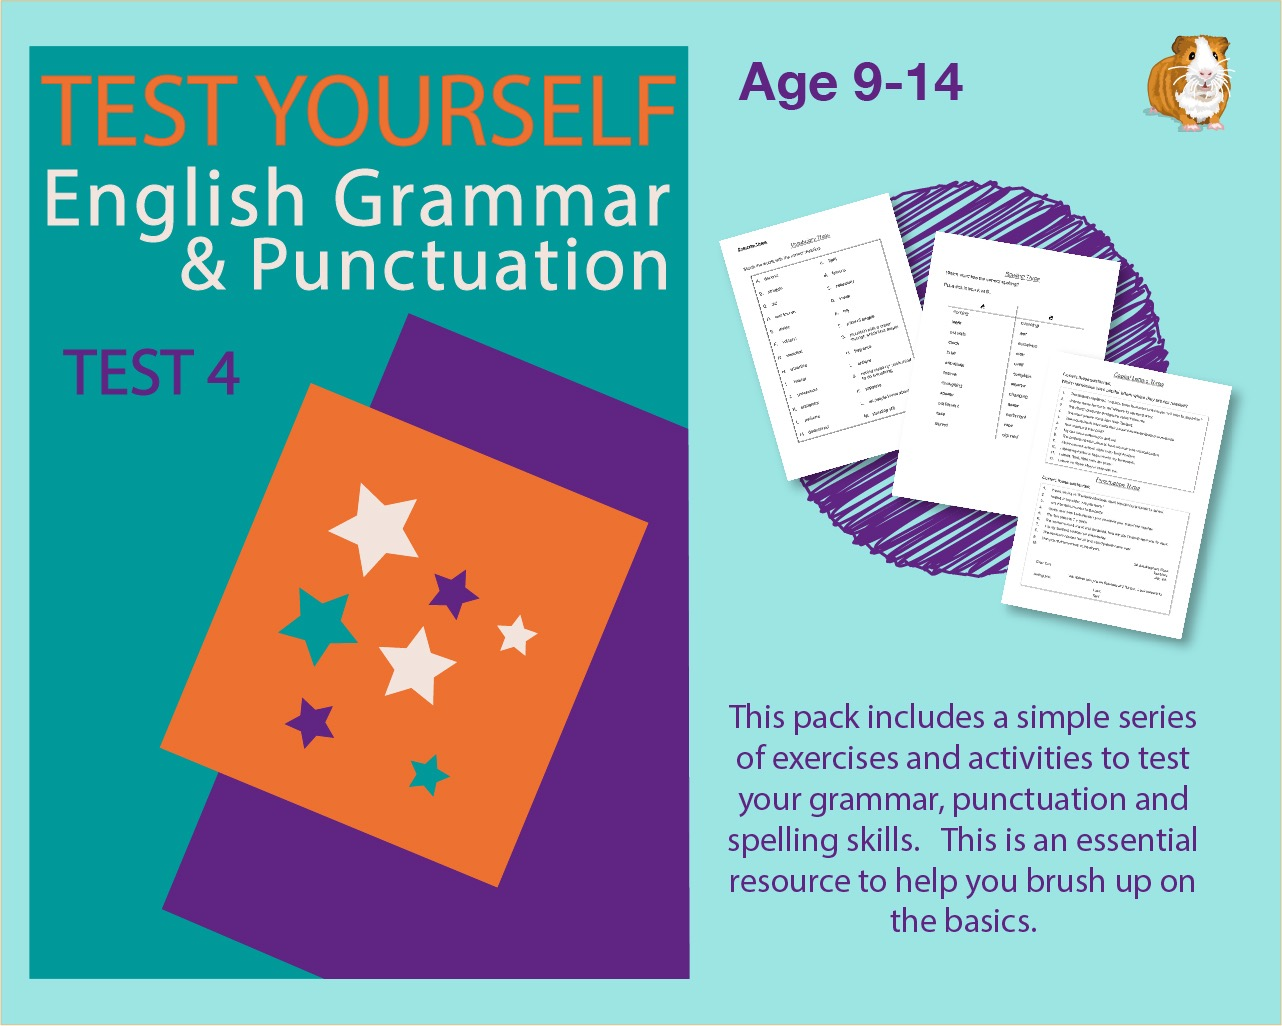 Assessment Test 4 (Test Your English Grammar And Punctuation Skills) 9-14 years